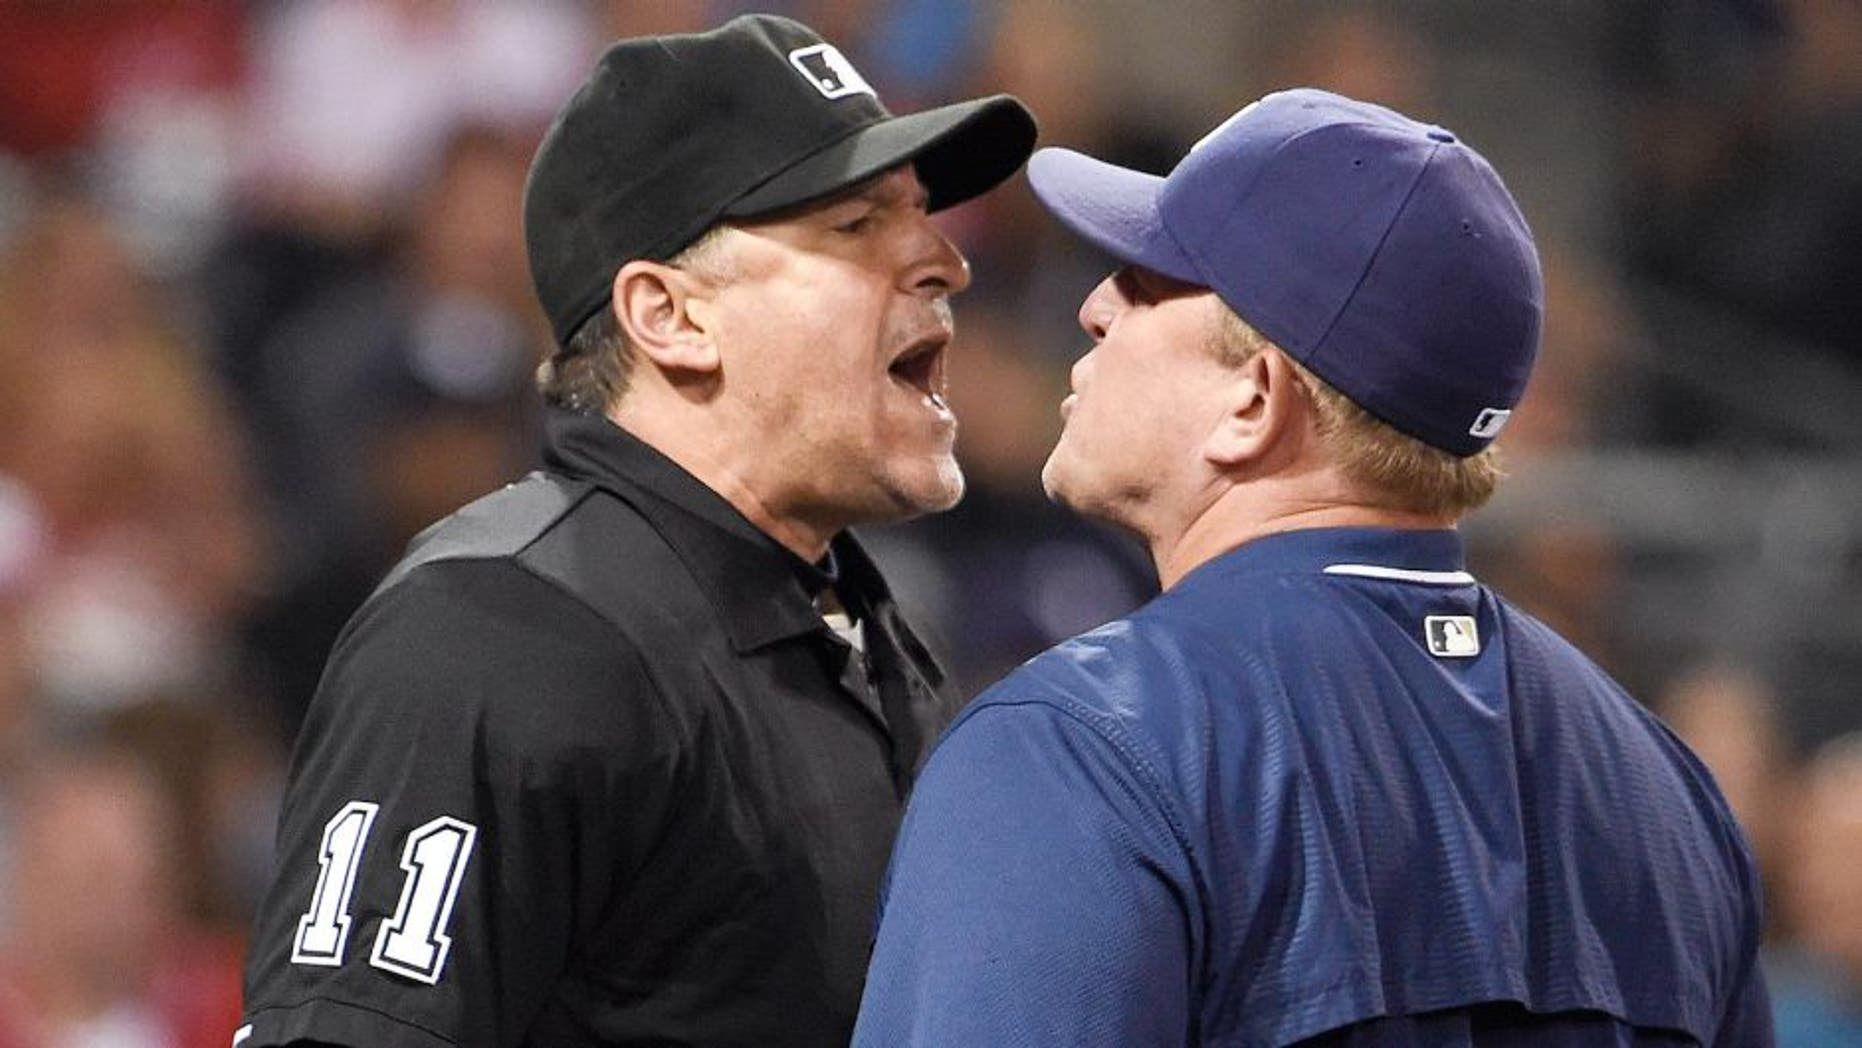 SAN DIEGO, CA - AUGUST 10: Home plate umpire Tony Randazzo and Pat Murphy #24 interim manager of the San Diego Padres argue after Murphy was ejected from the game during the fourth inning of a baseball game against the Cincinnati Reds at Petco Park August 10, 2015 in San Diego, California. (Photo by Denis Poroy/Getty Images)